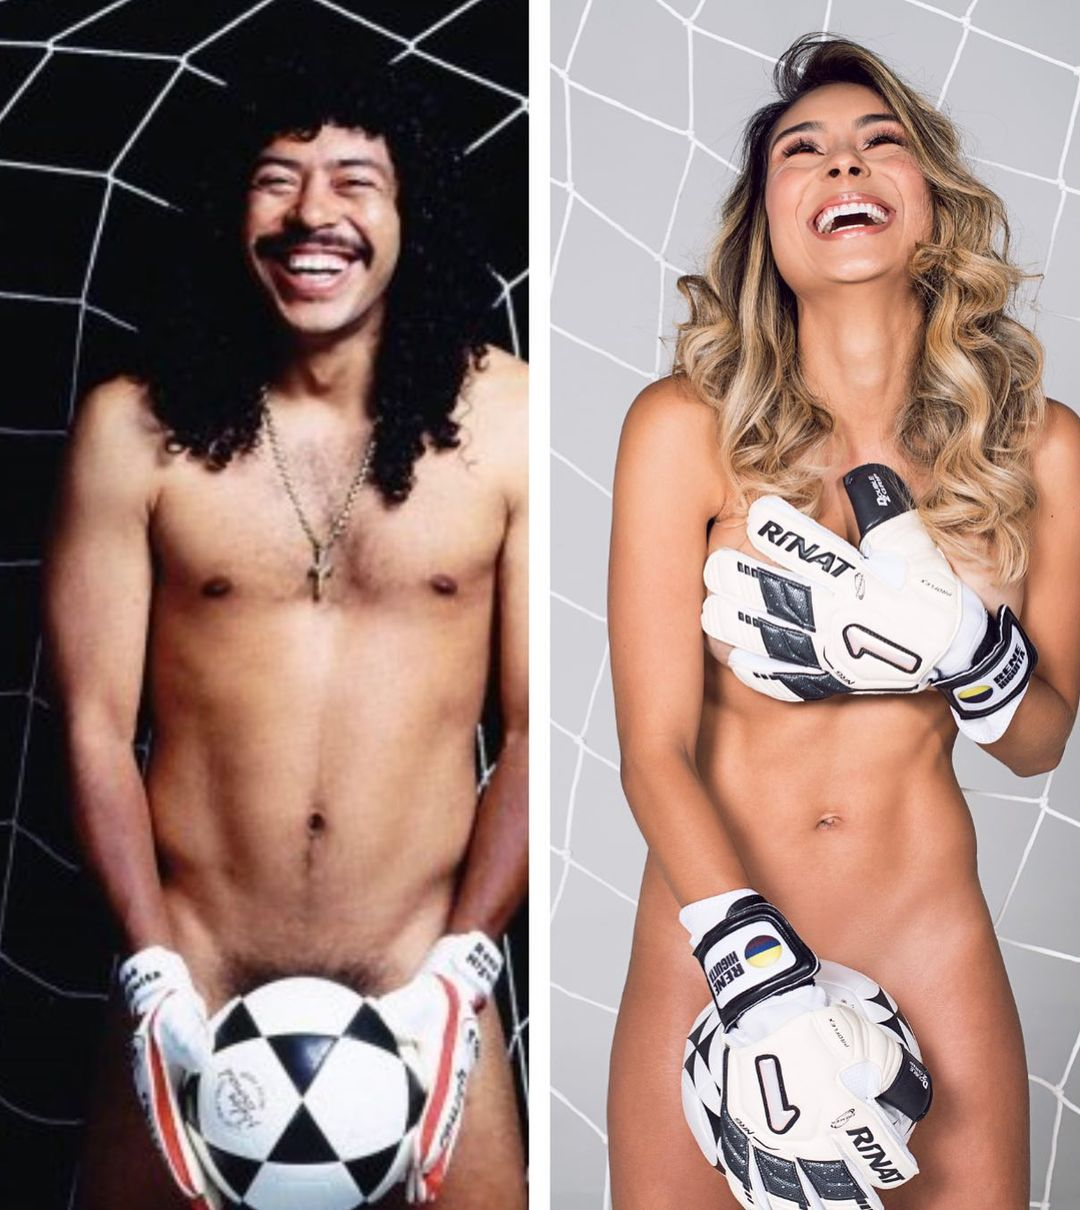 Pamela Higuita poses for a raunchy naked photoshoot